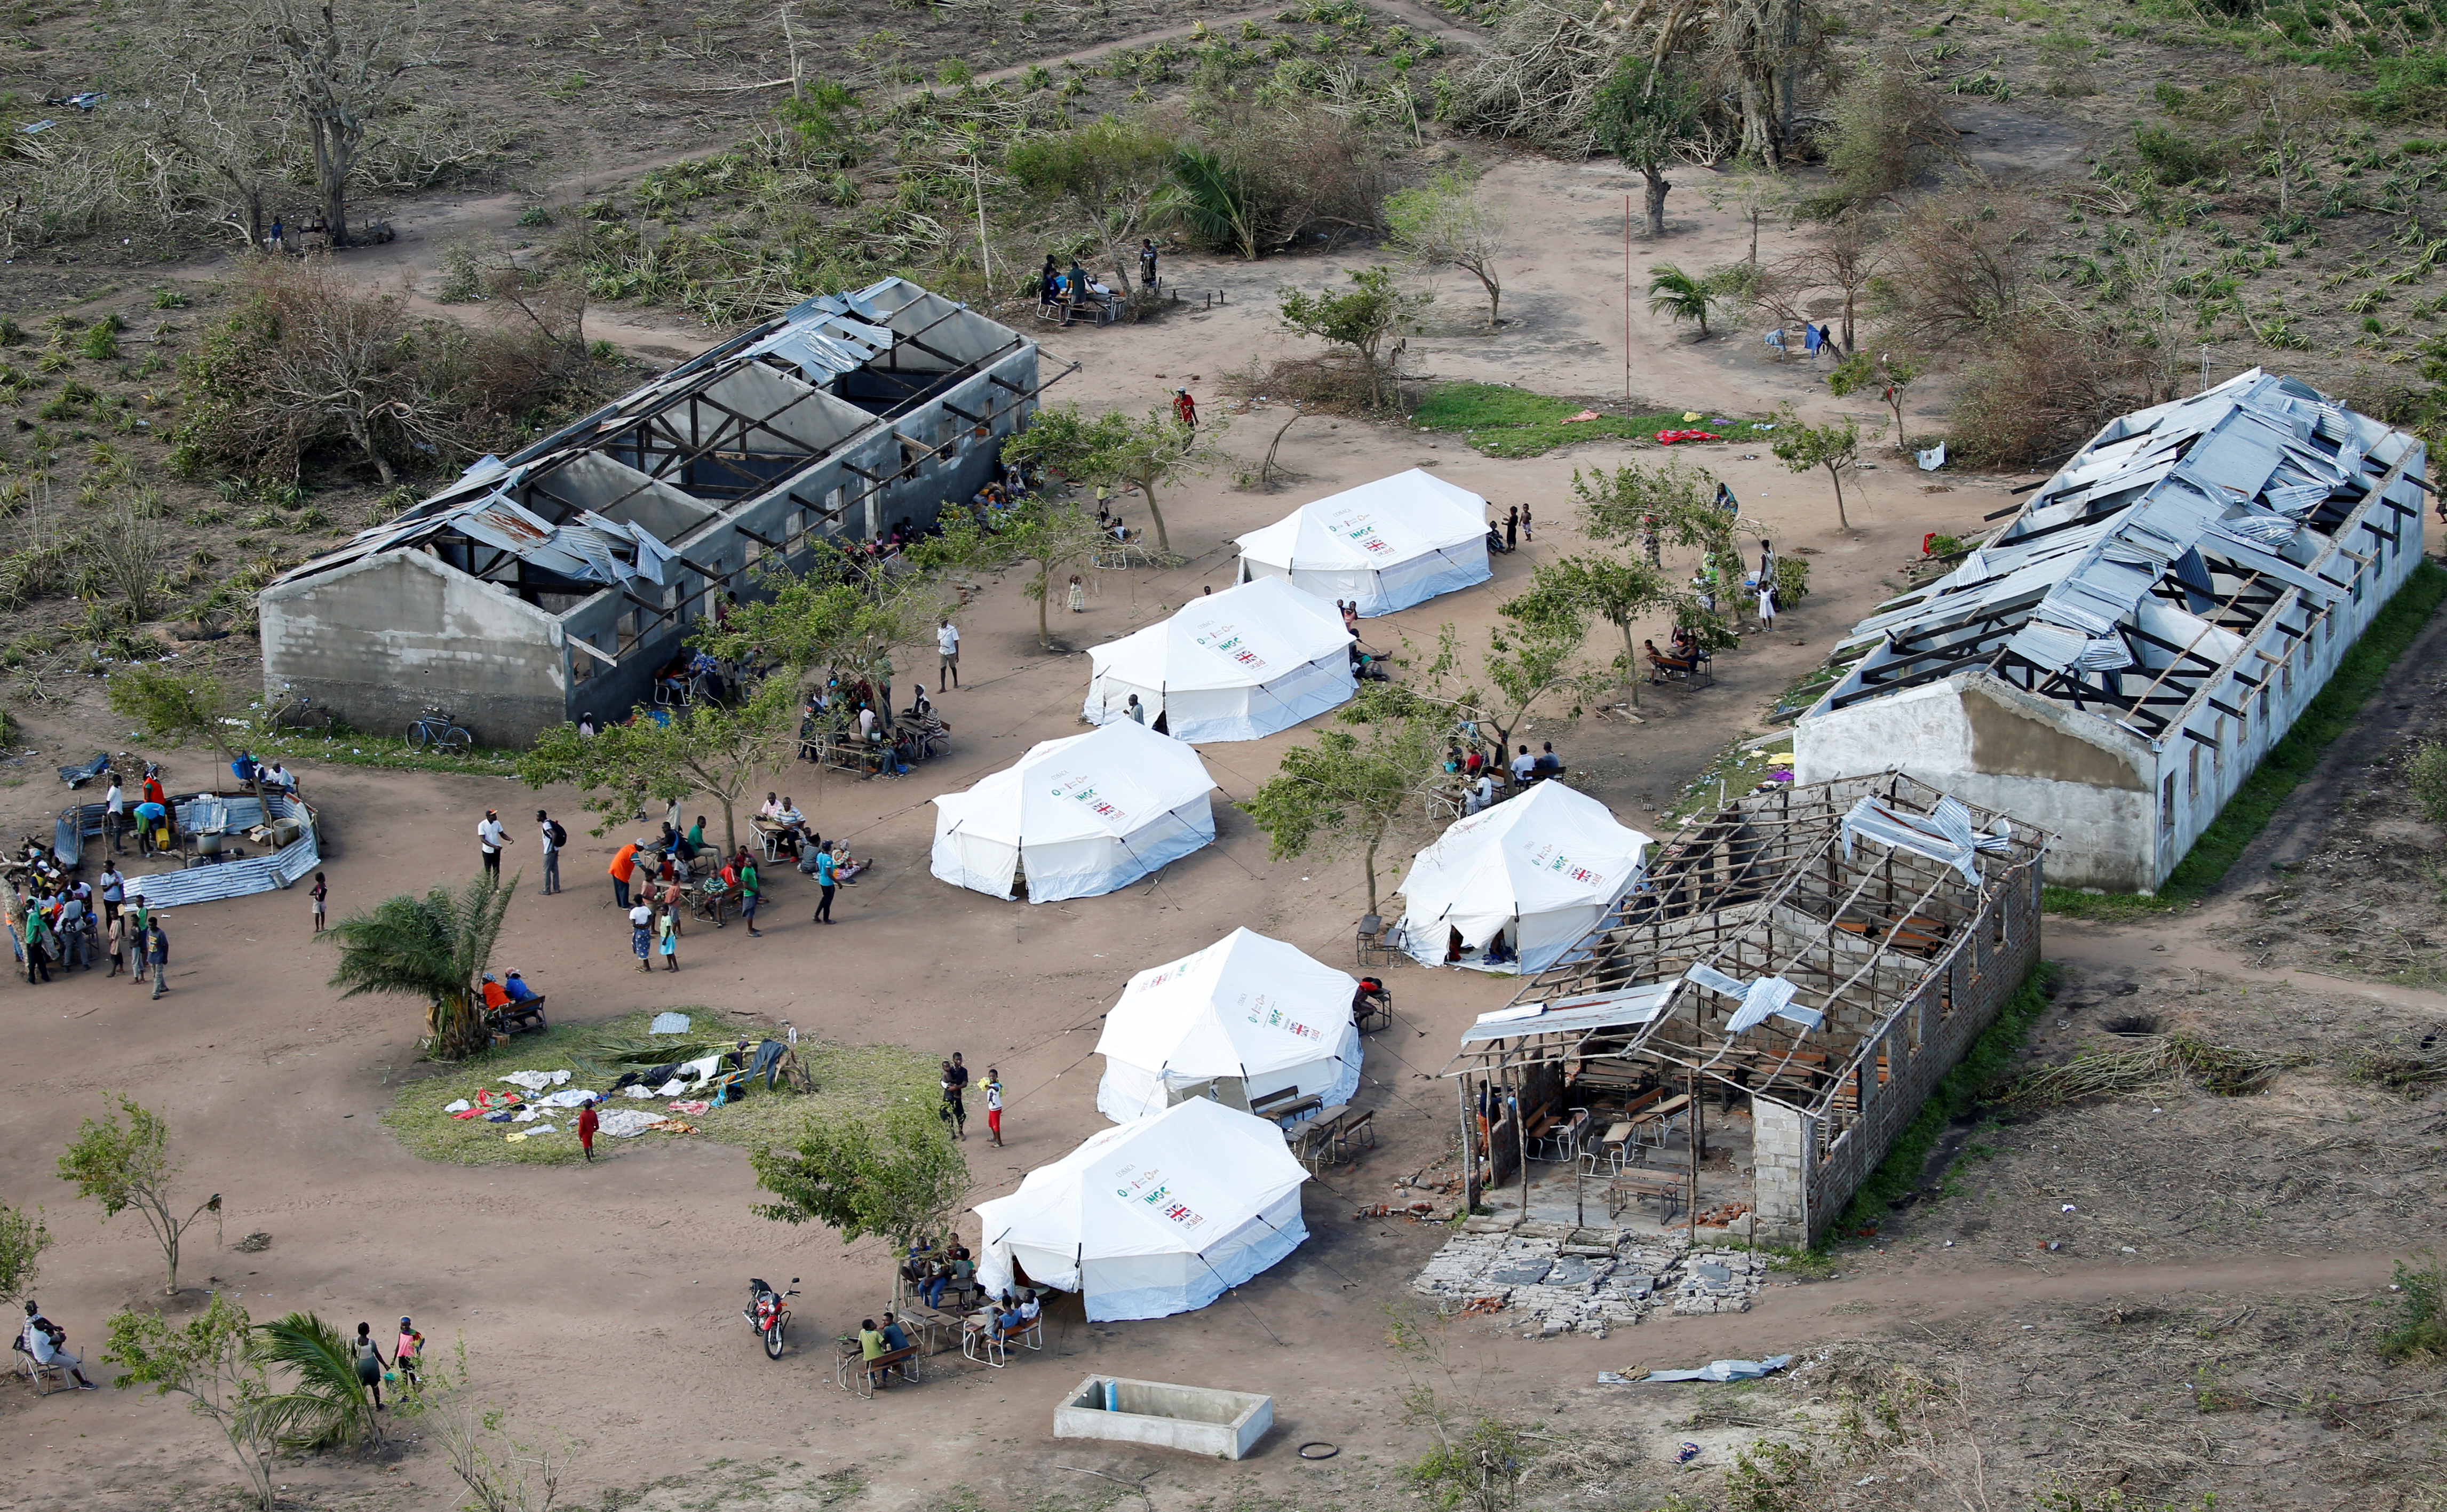 Tents belonging to aid organiaations are seen after Cyclone Idai at Guara Guara village outside Beira, Mozambique, March 22, 2019.